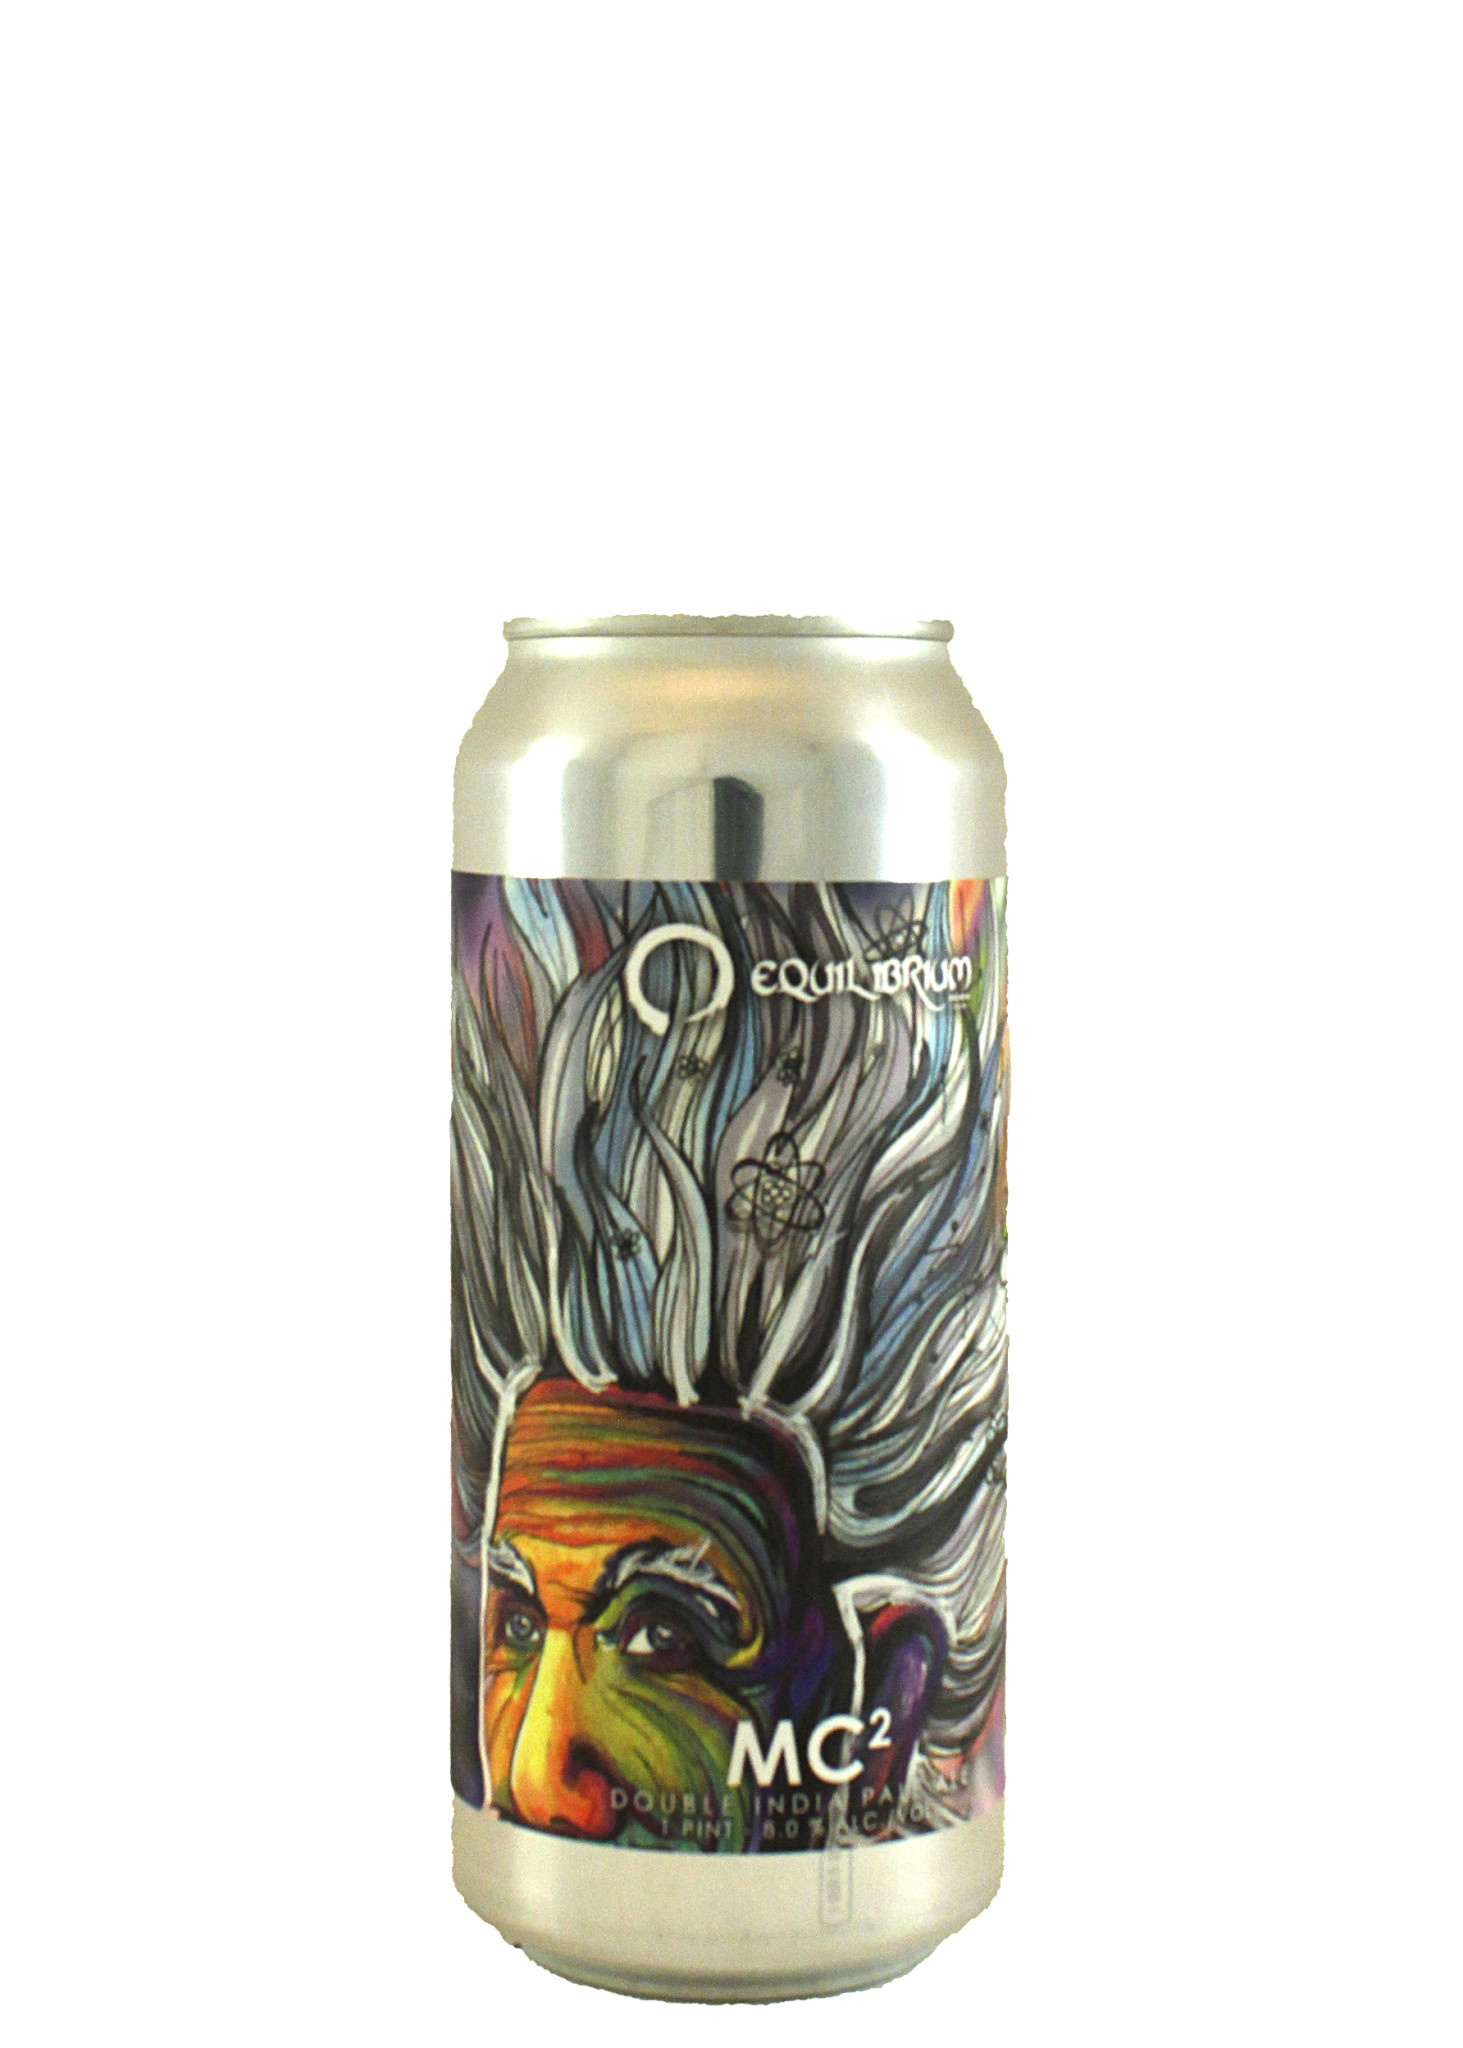 "Equilibrium Brewery ""MC2"" Double IPA 16oz. Can - Middletown, NY"